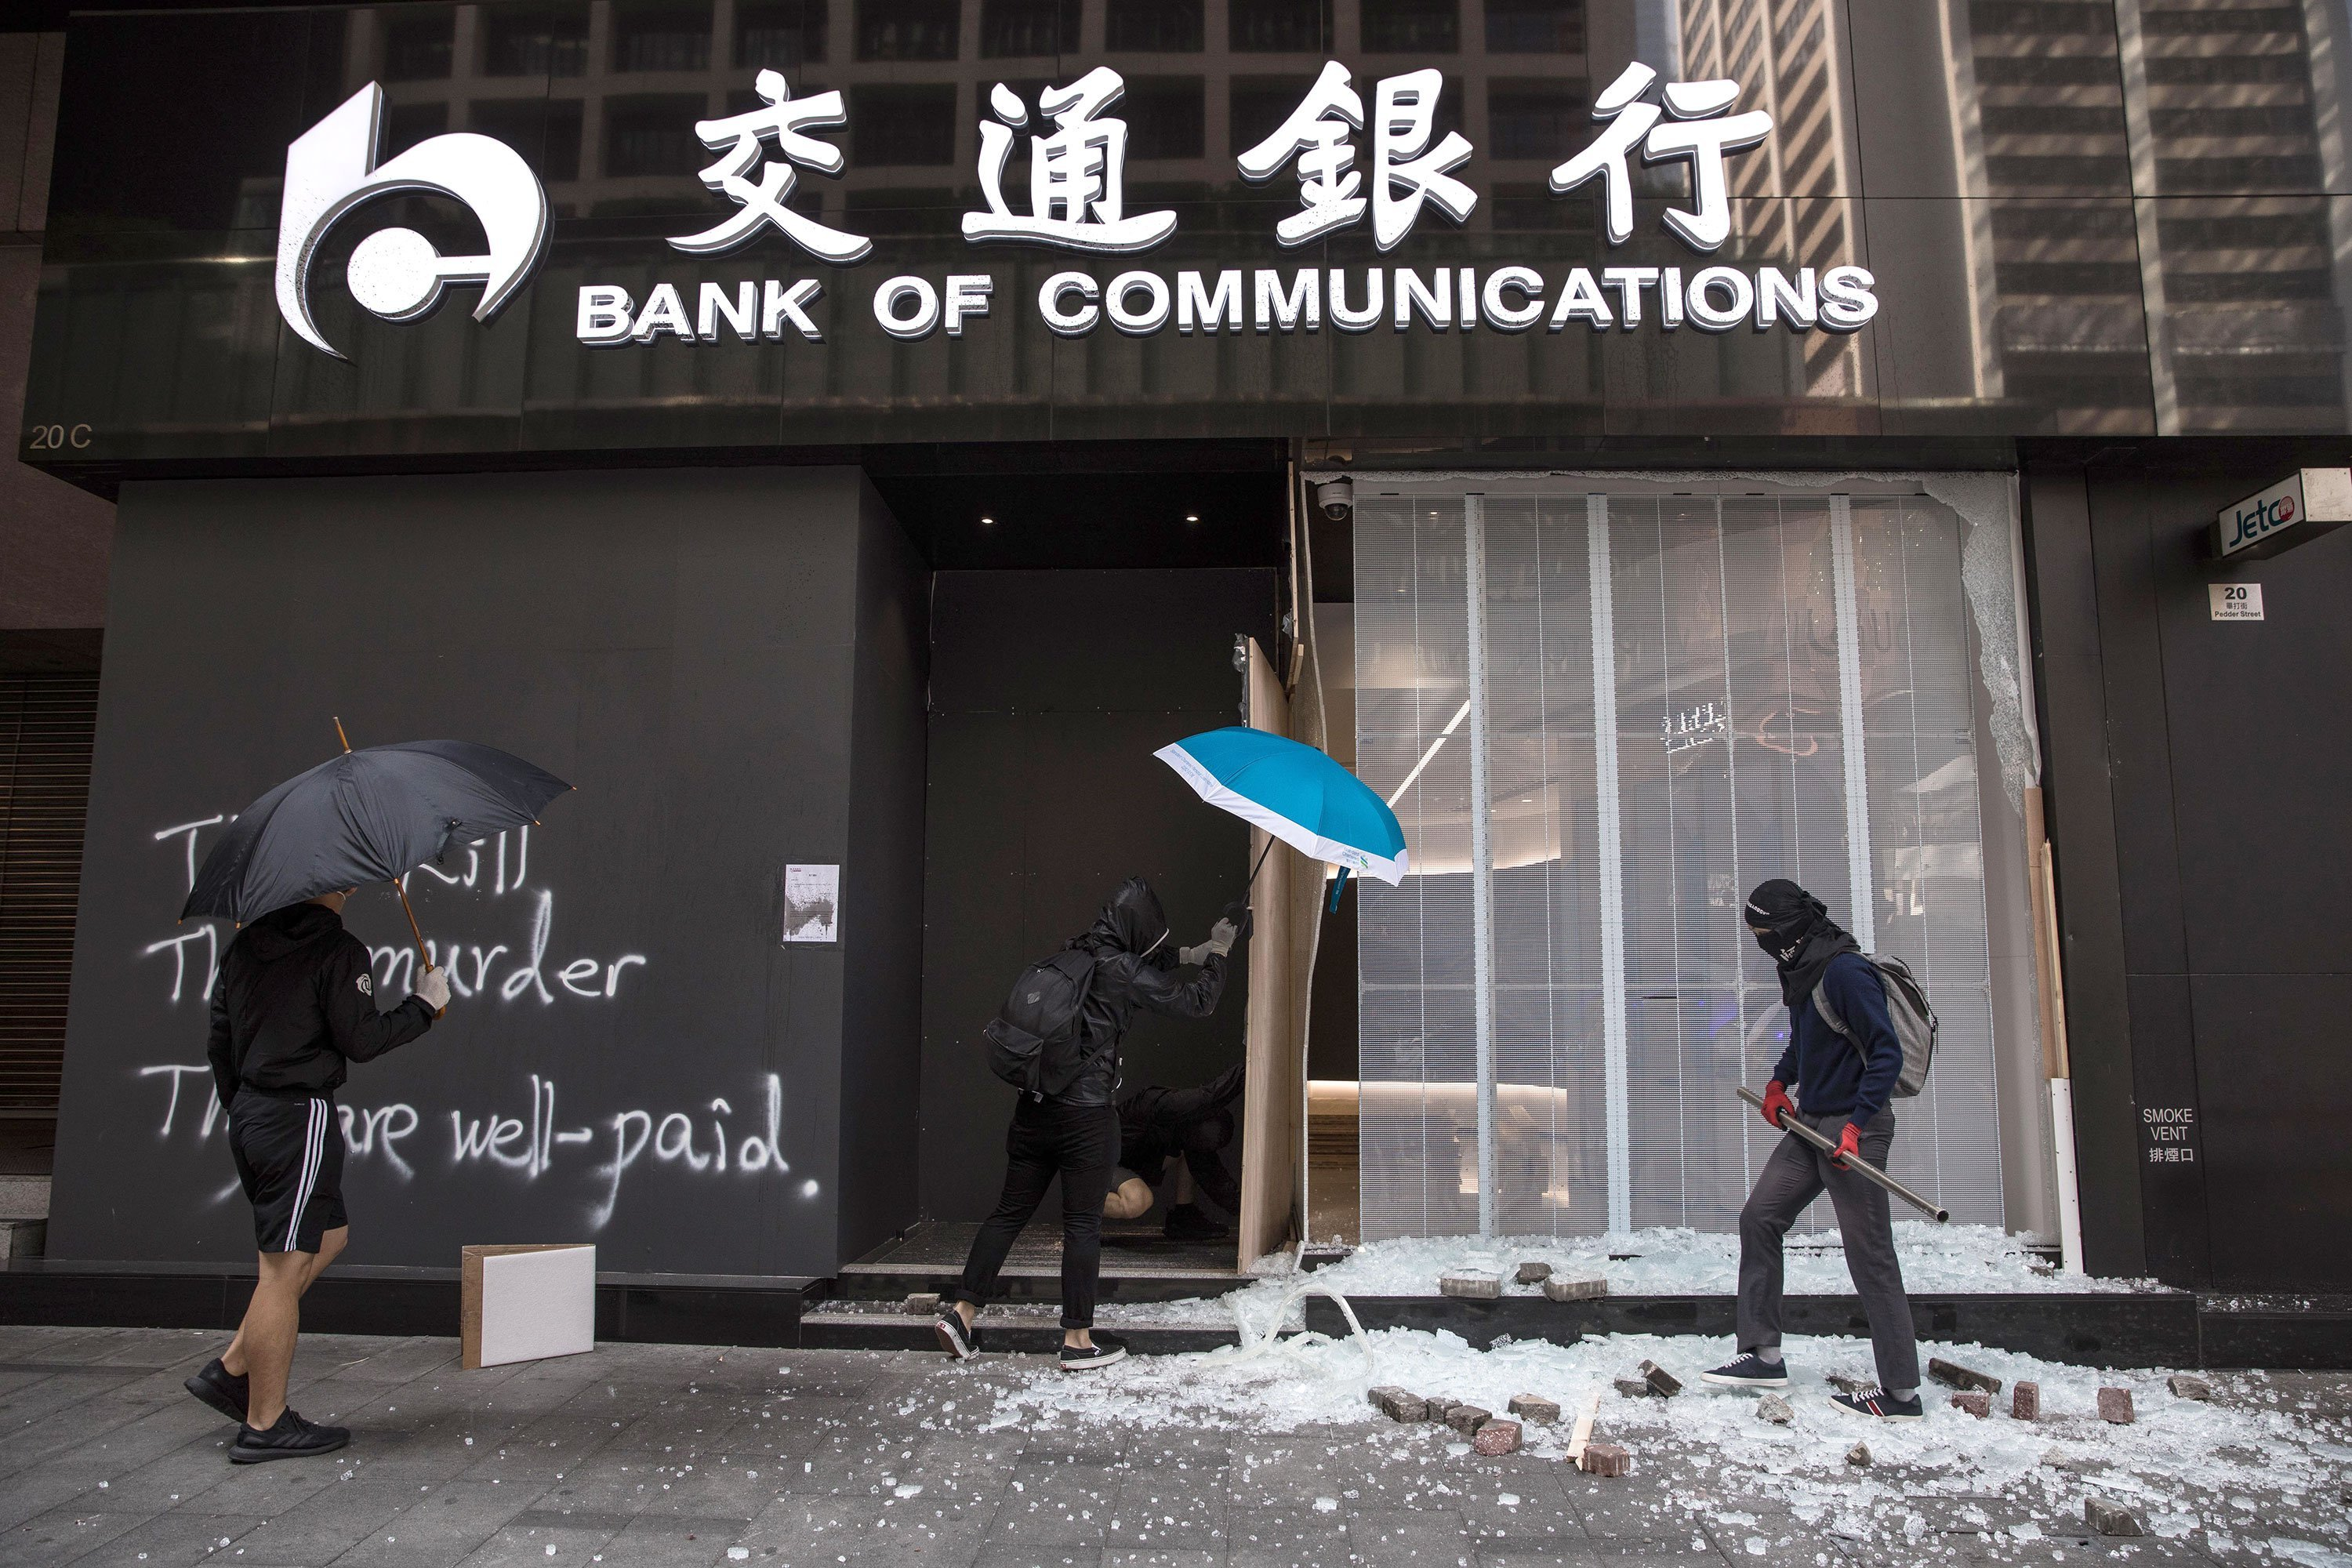 Protests are rattling Hong Kong. But companies aren't abandoning the city yet